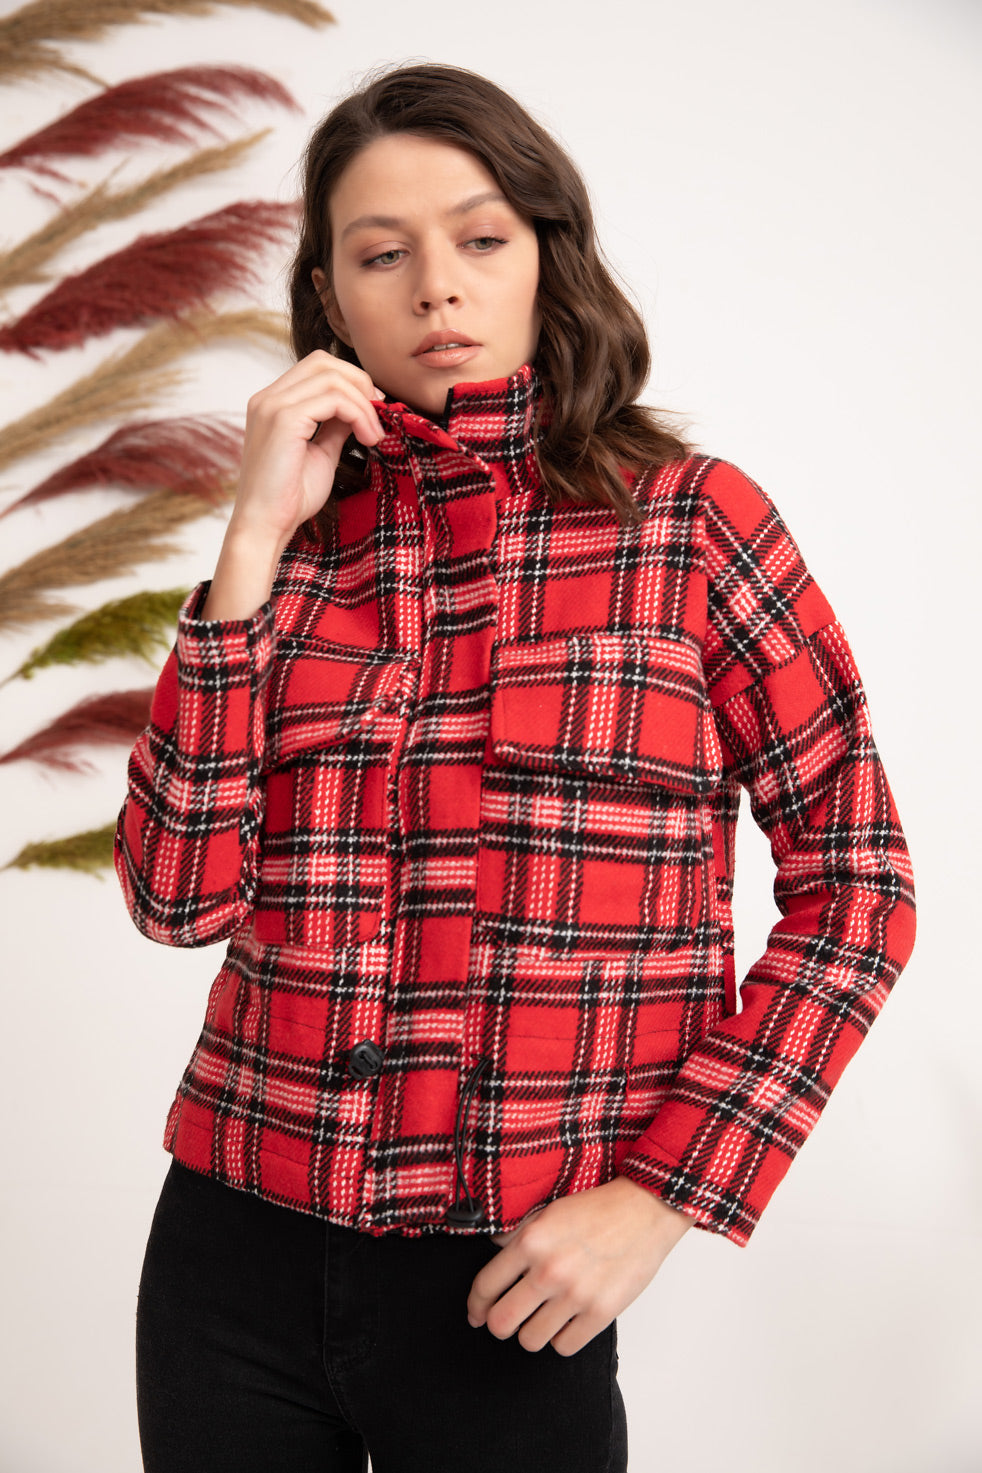 Red Plaid Jacket Coat With Pockets